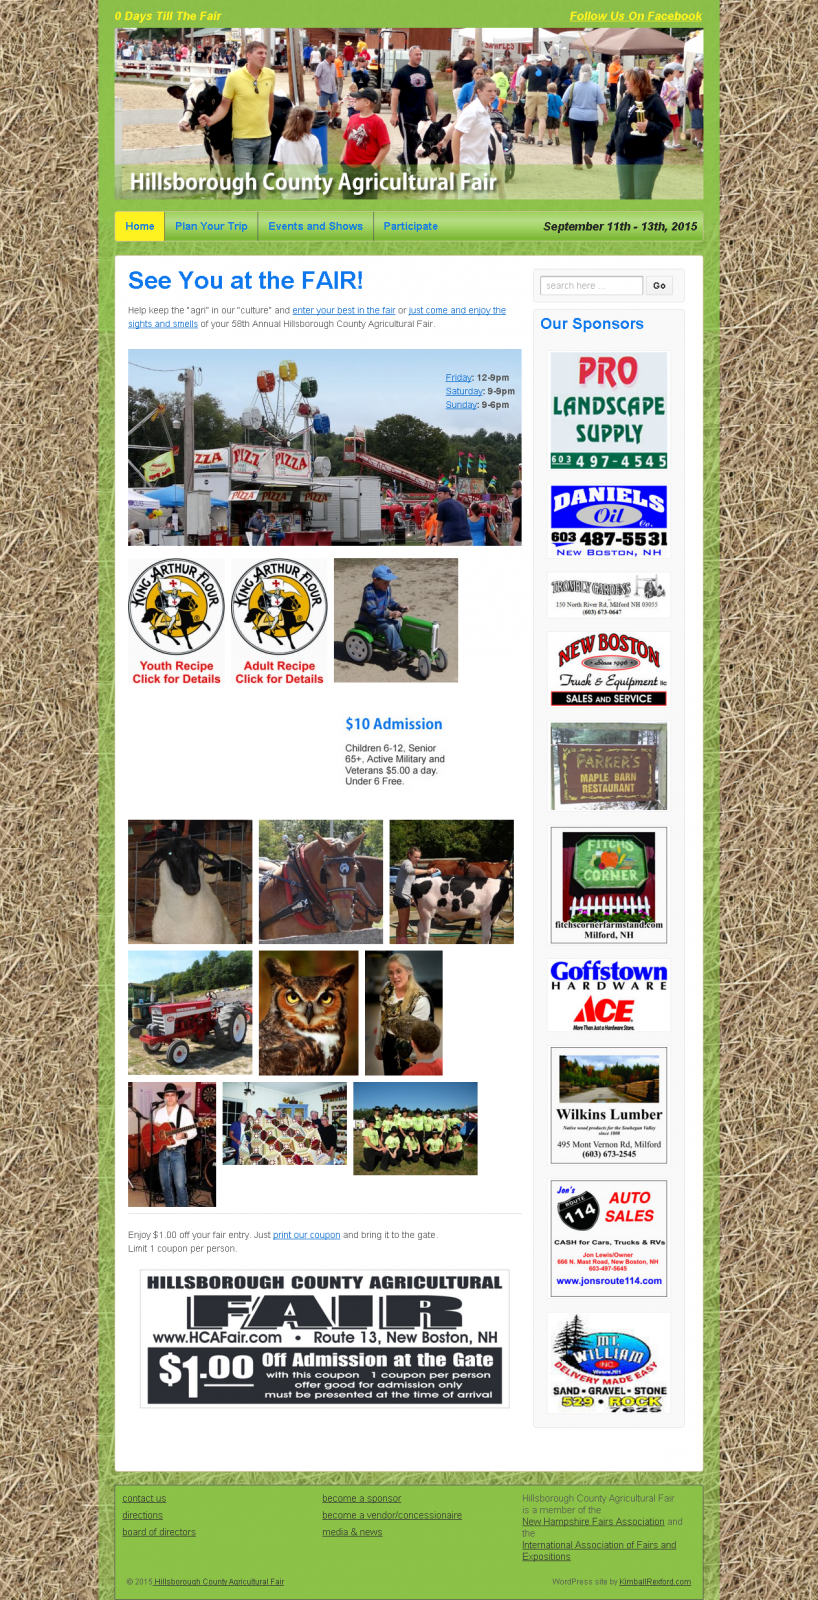 Hillsborough County Agricultural Fair